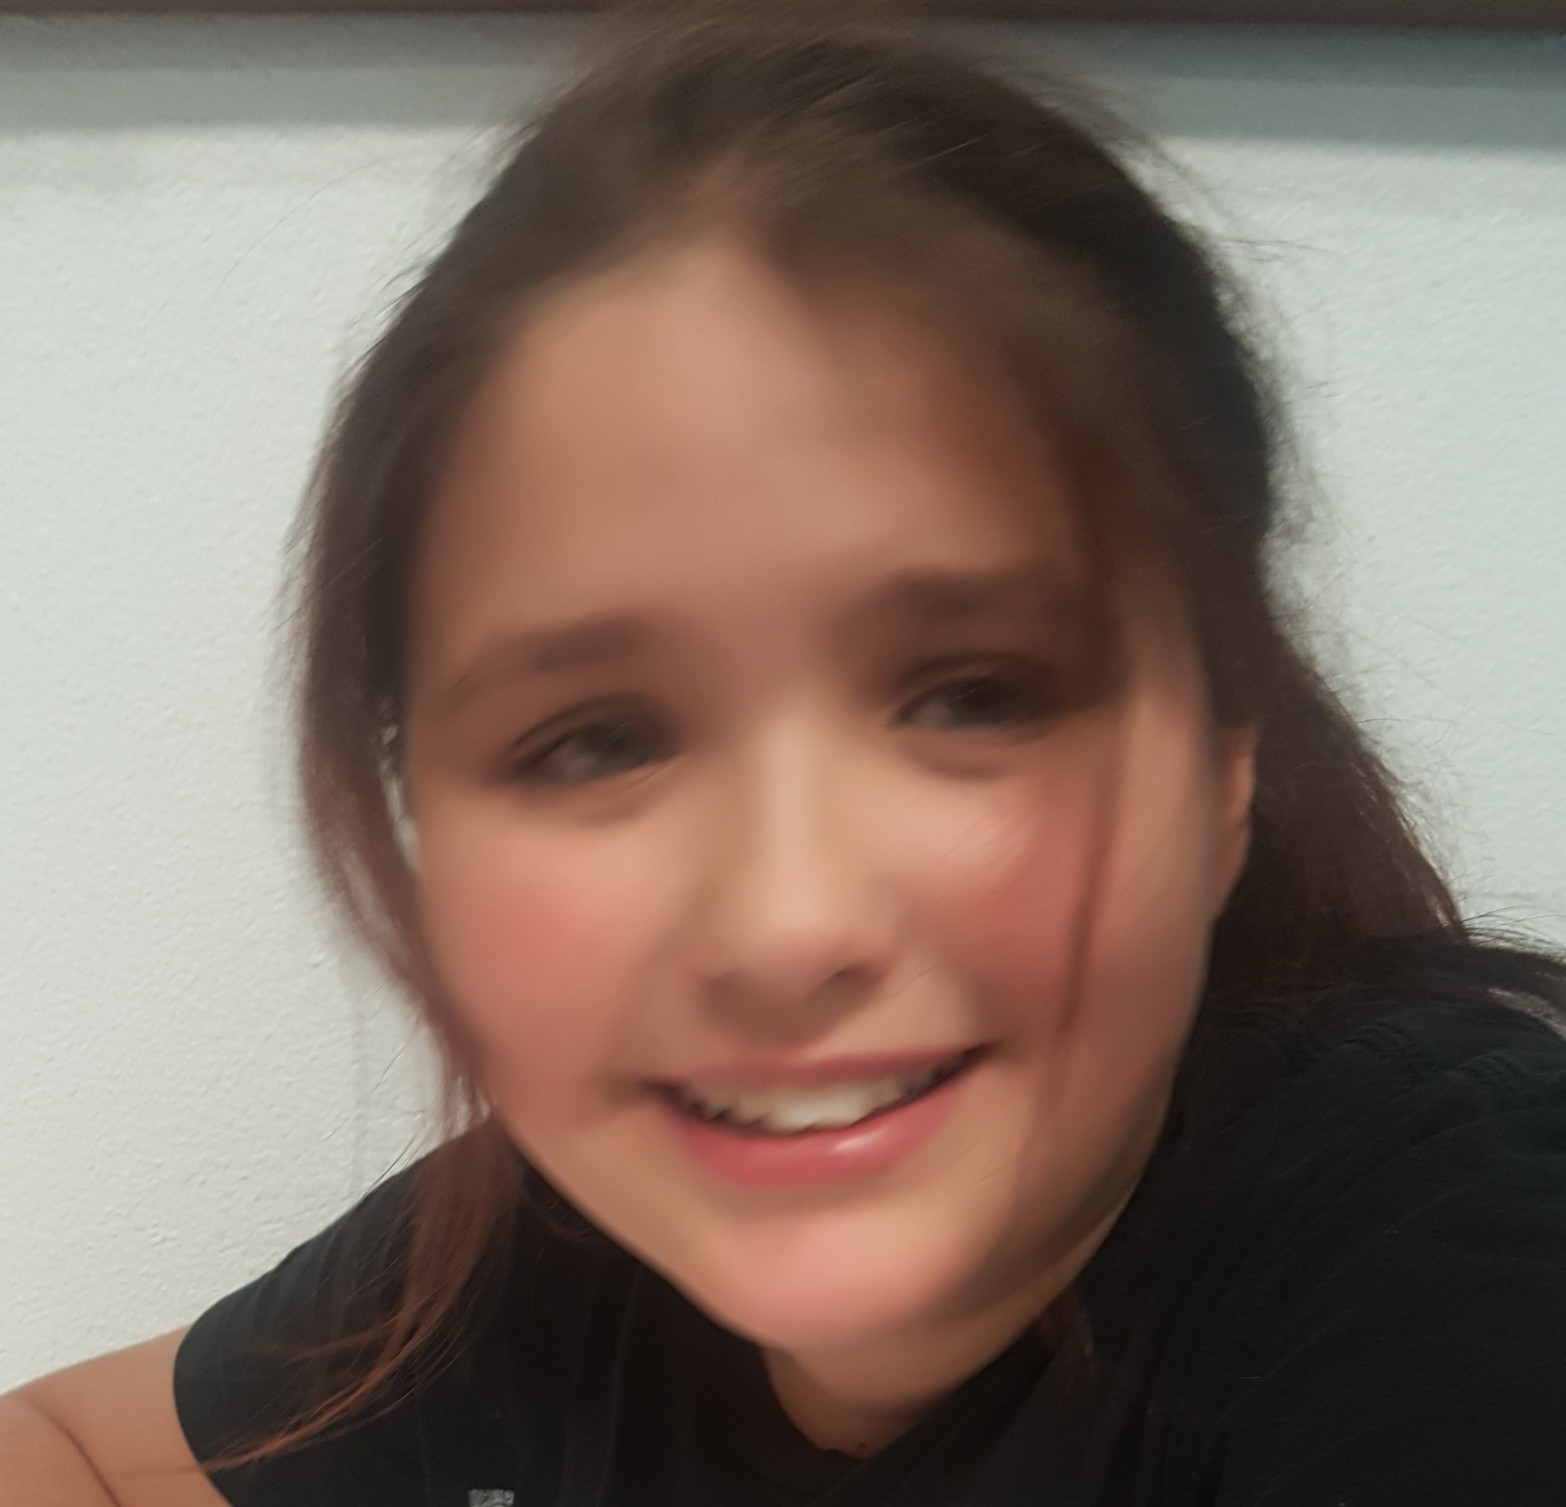 Anya Backhaus   This is Anya Backhaus. She is one of our student mentors and is 11 years old. She enjoys helping teach gymnastics classes and takes many classes. Such as Ballet, Gymnastics, Folklorico and Flamenco. she enjoys helping teach and hopes to become a compassionate teacher.